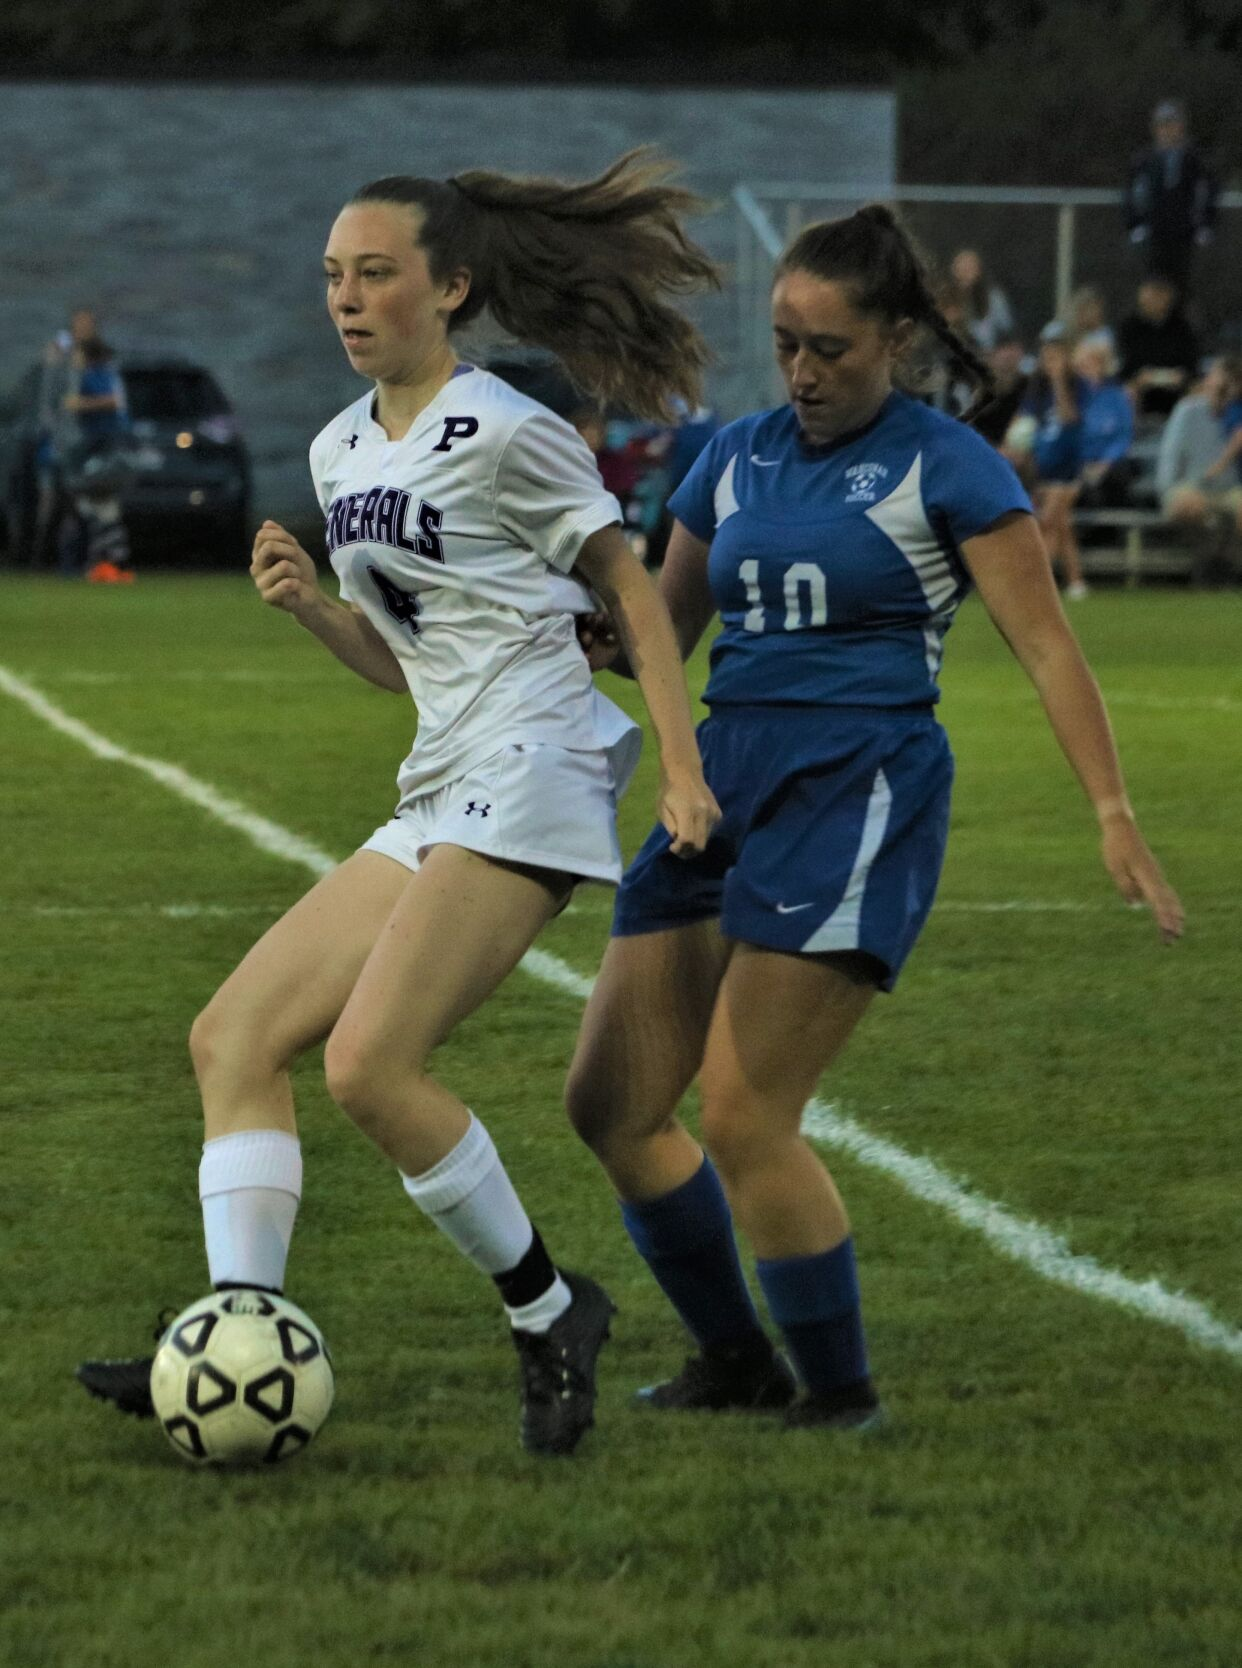 cece supranowicz and claire naef play soccer